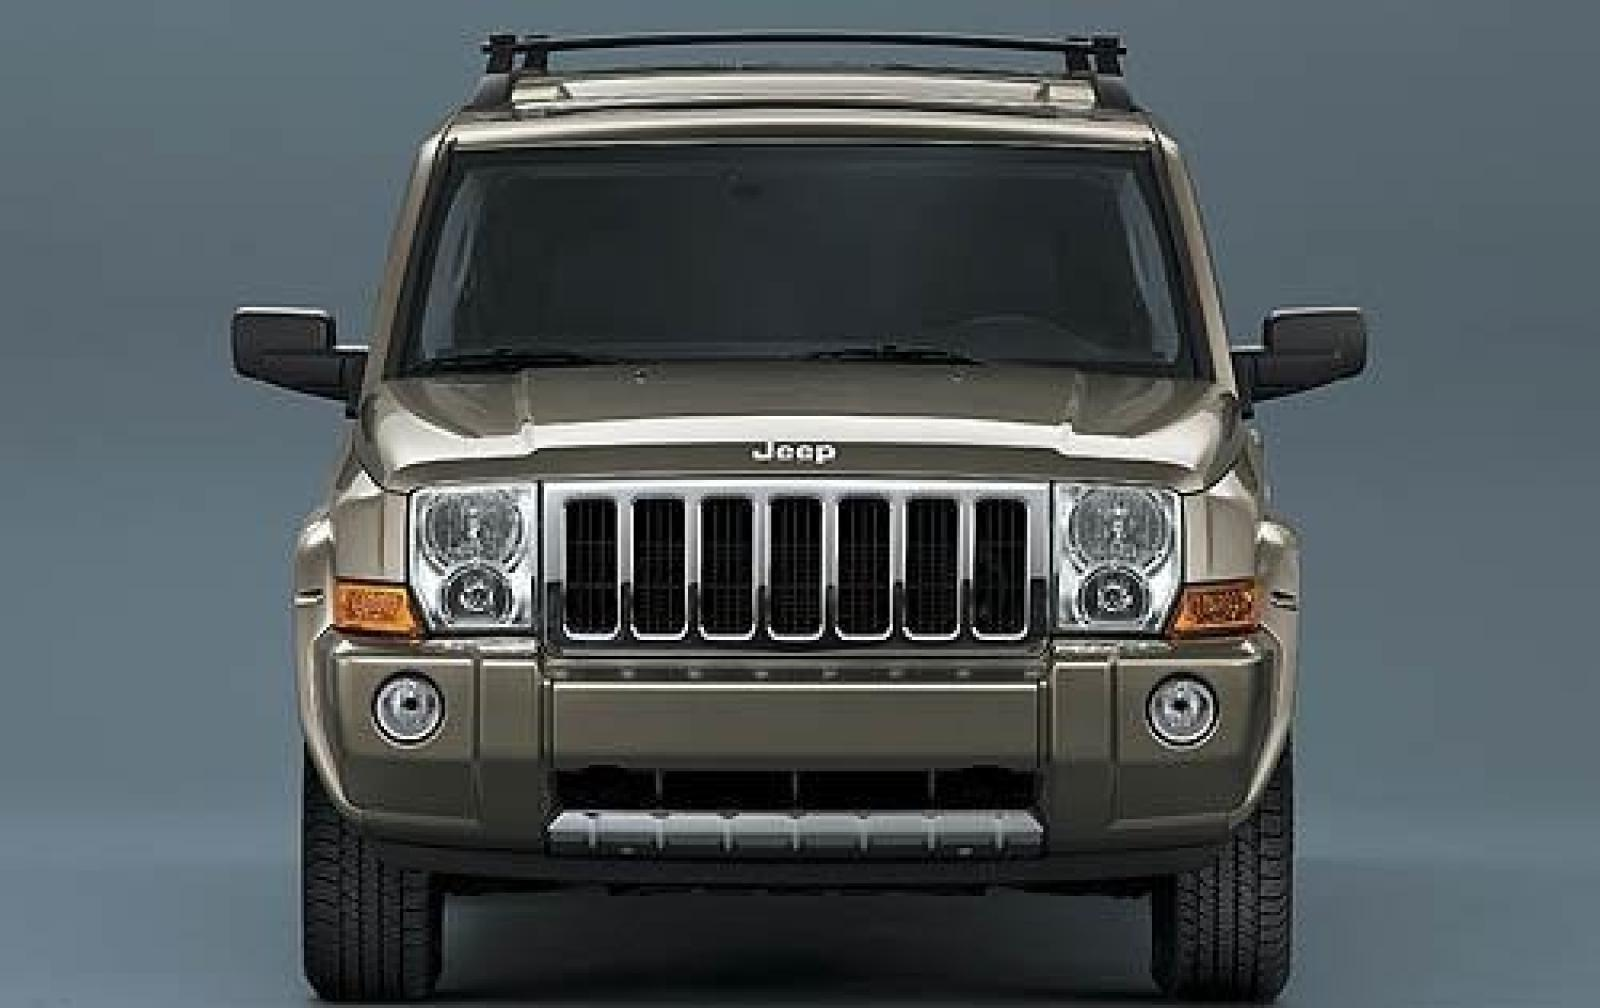 2010 jeep commander information and photos zombiedrive. Black Bedroom Furniture Sets. Home Design Ideas